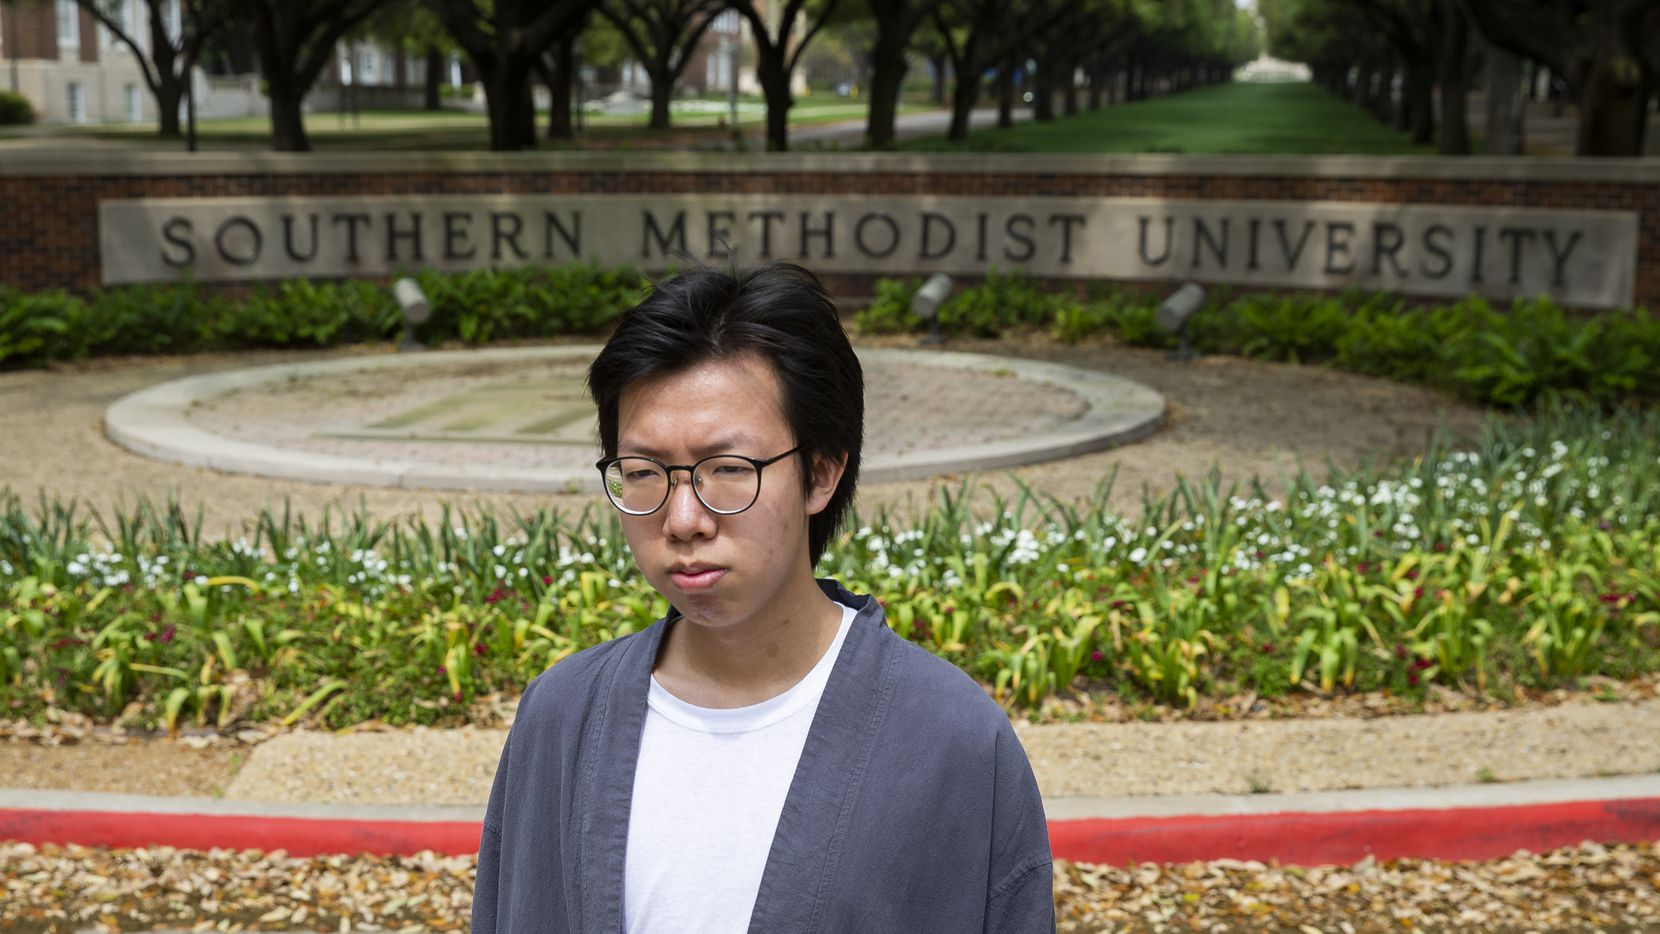 Yuanhao Dou, a freshman at Southern Methodist University, is desperately trying to get back home to China unsure if future travel restrictions will make it impossible. He's among thousands of international students in Texas stuck in limbo amid coronavirus concerns. (Juan Figueroa/ The Dallas Morning News)